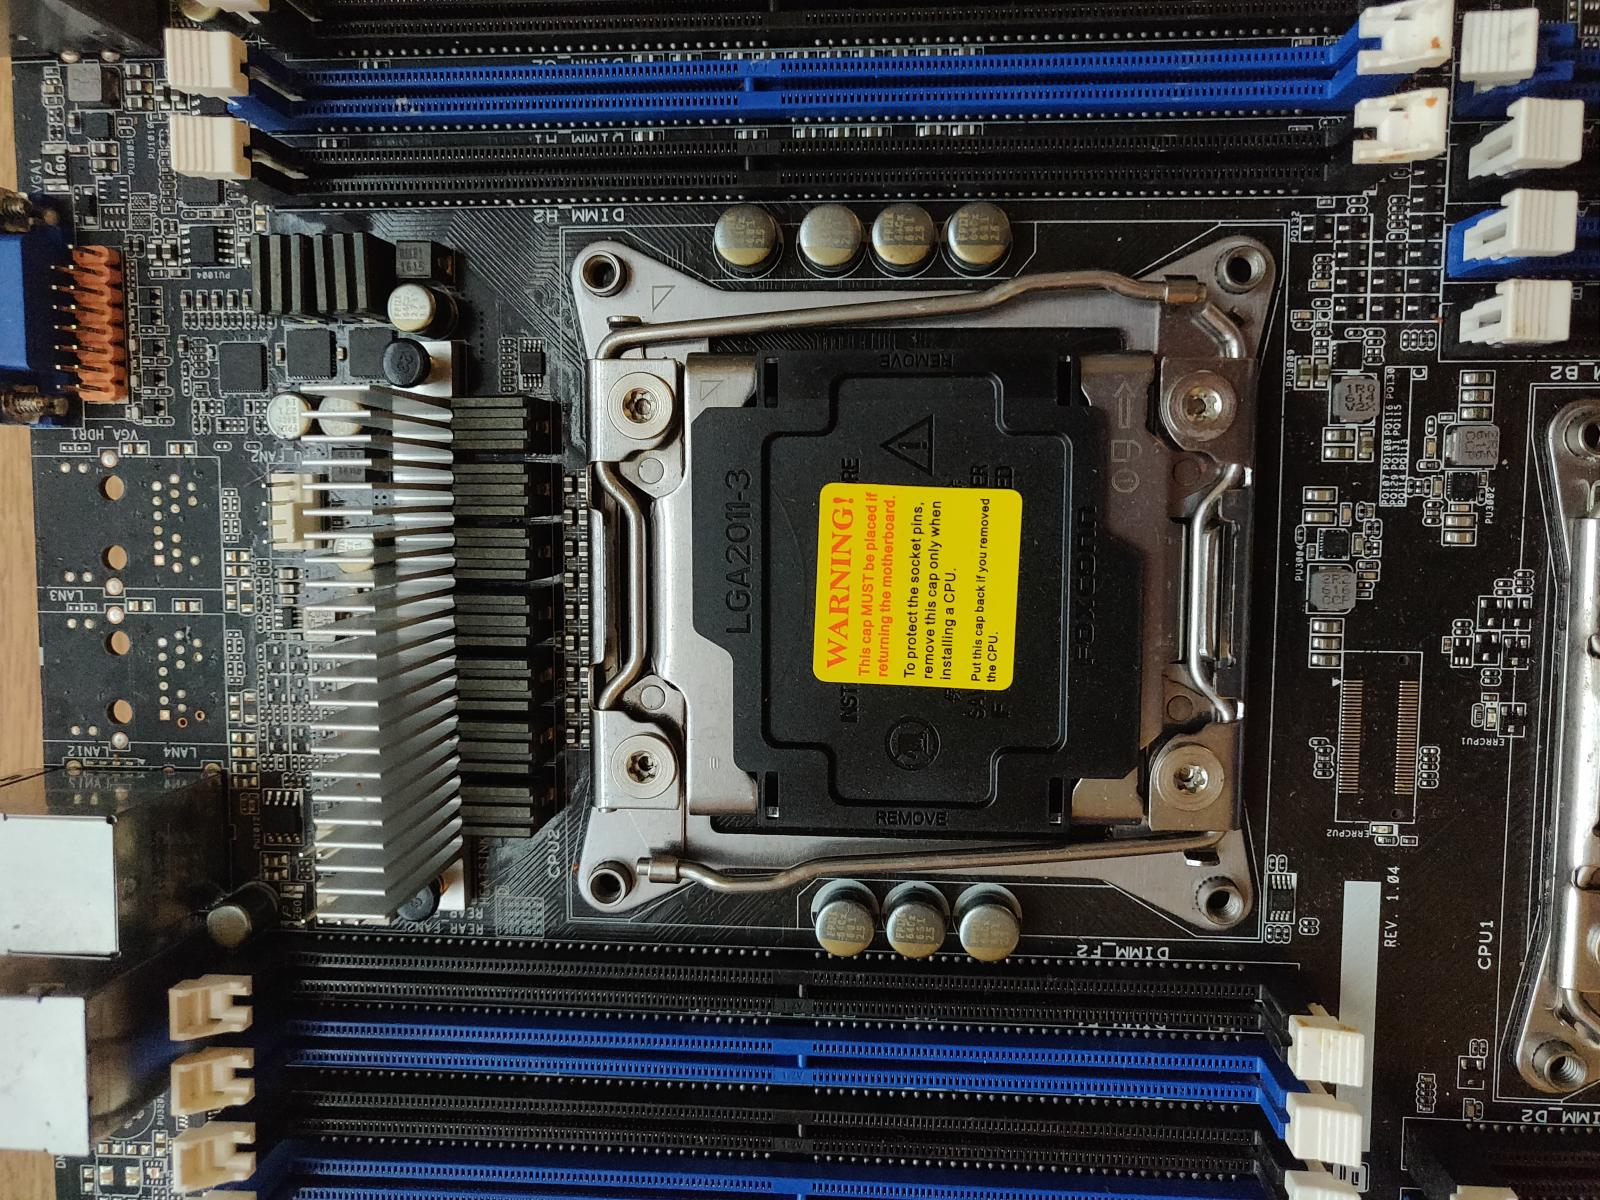 Photo of Asus Z10PE-D16 Server Motherboard - Intel C612 Chipset - Socket R3 (Please Read)